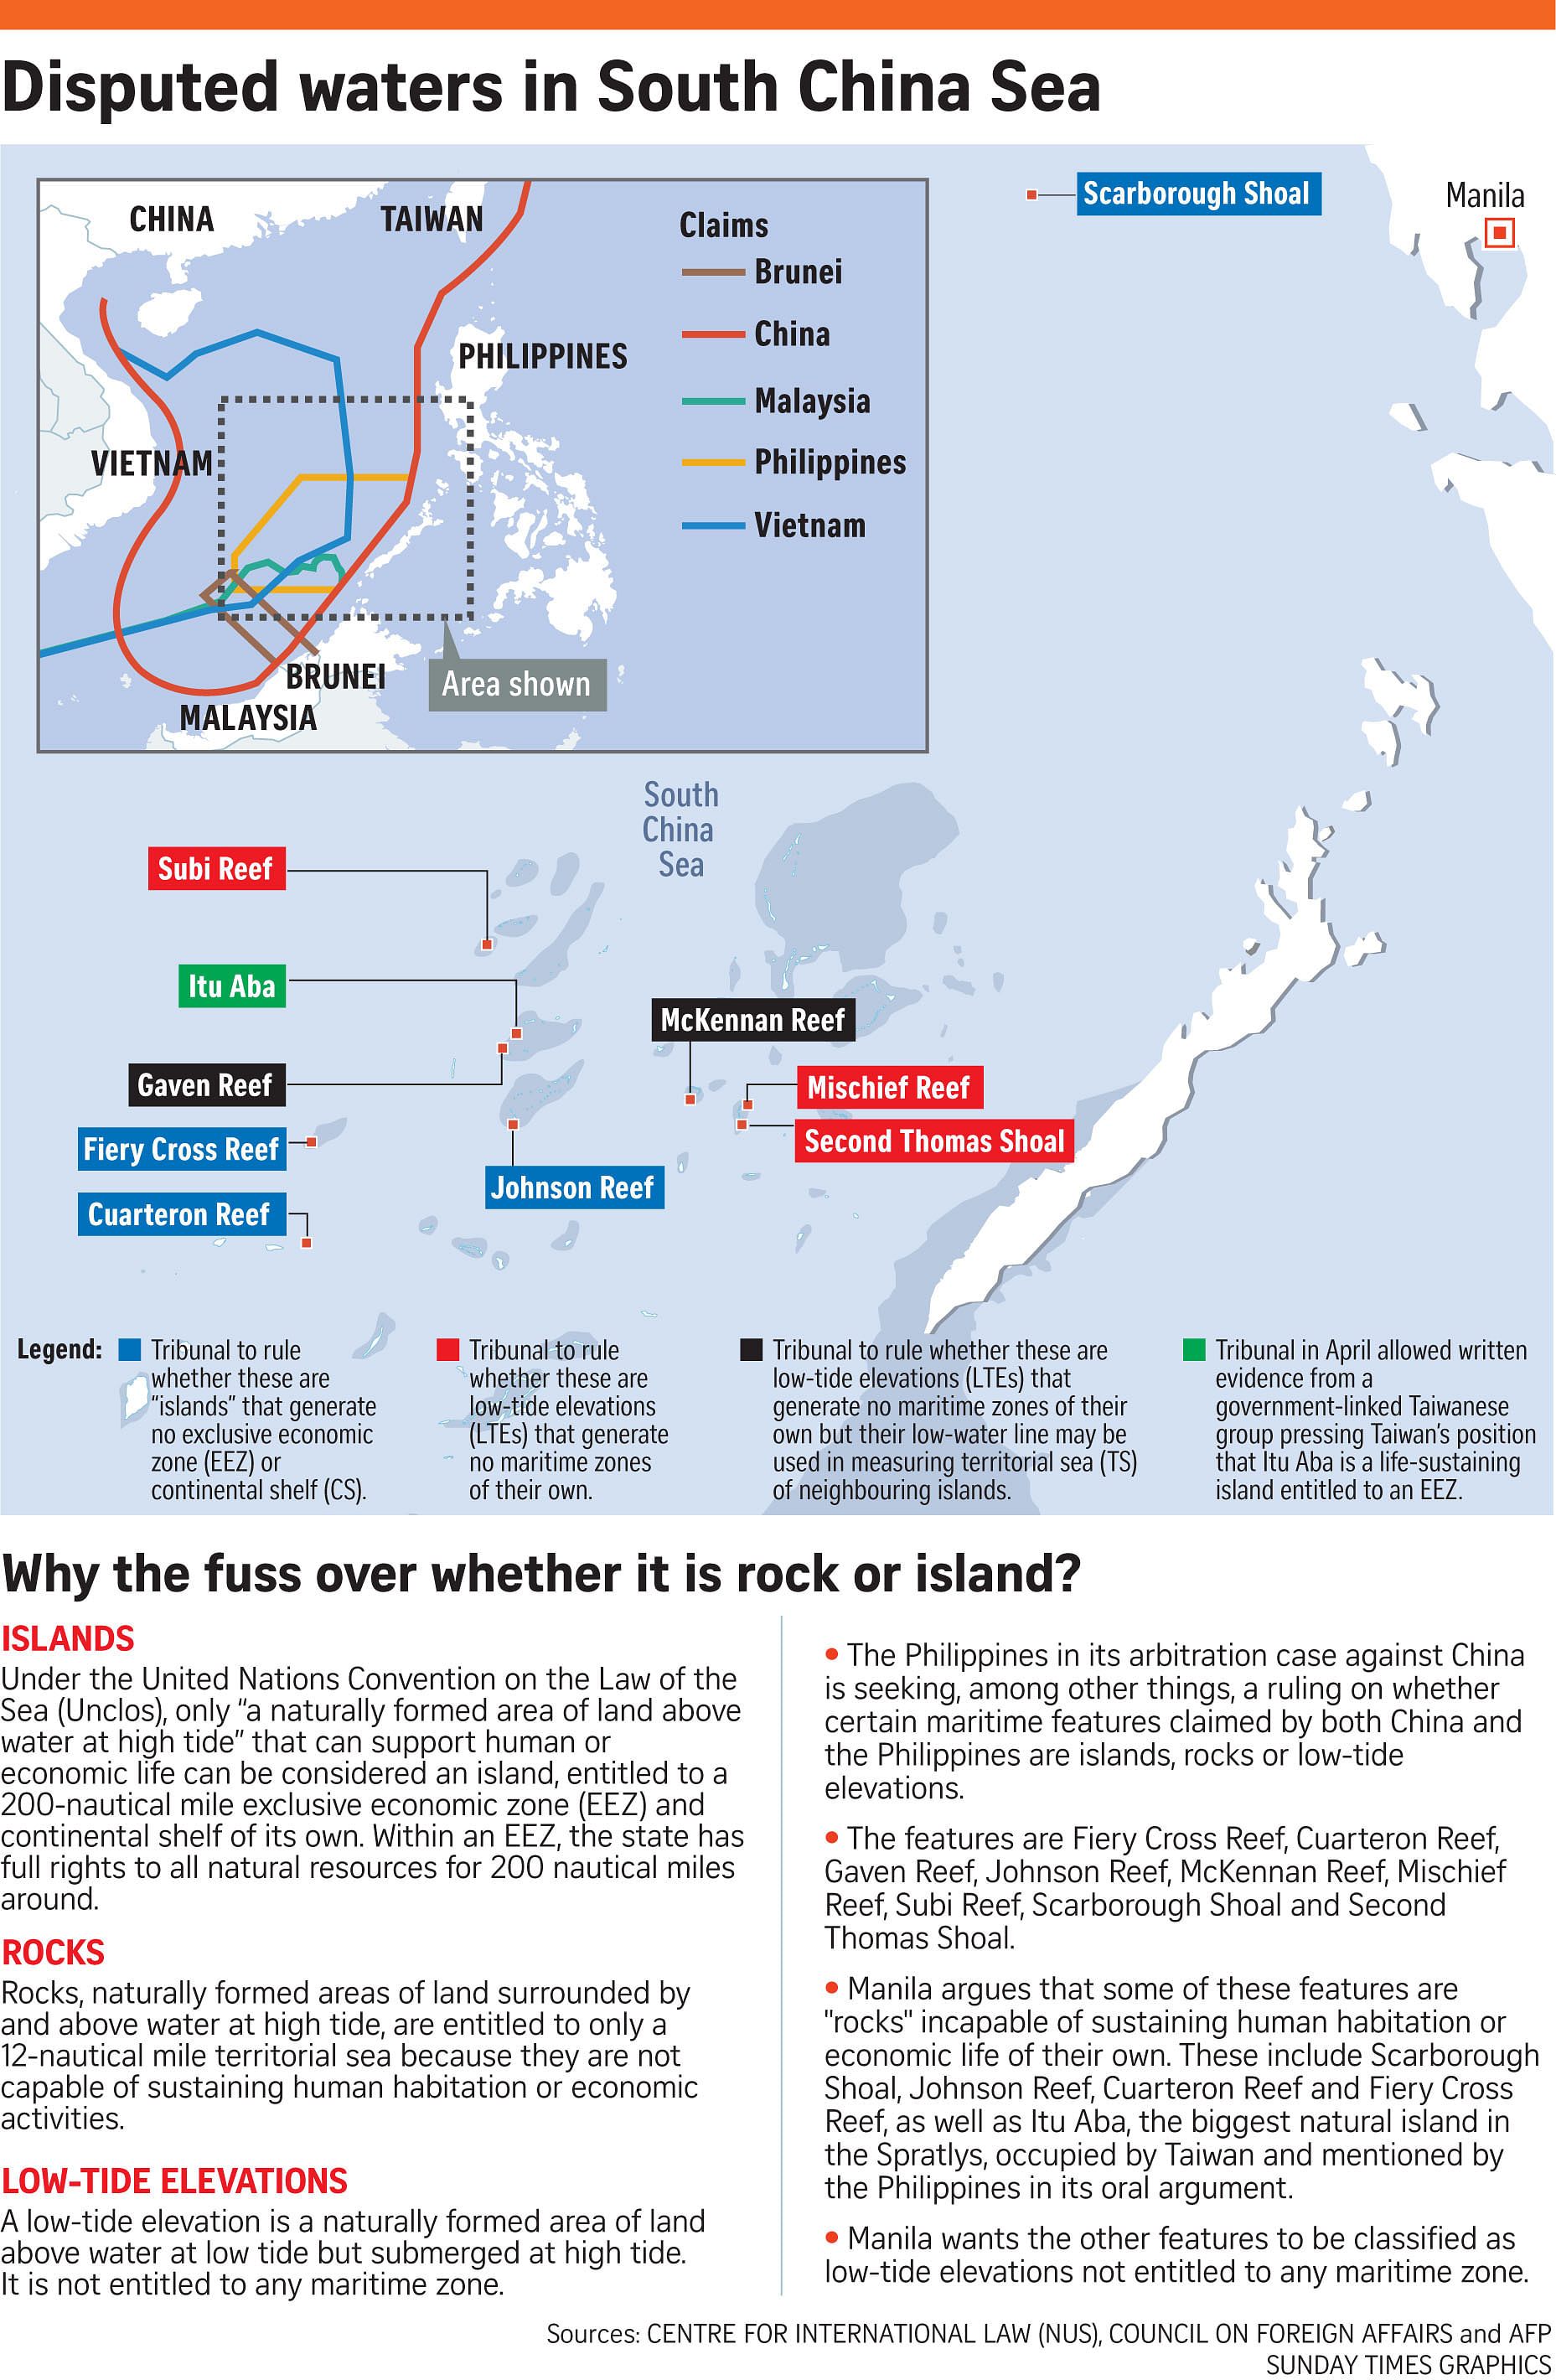 exclusive economic zone and south china The philippines on friday identified two areas in south china sea where joint exploration for oil and gas may be undertaken with china, including one in territory that both sides have argued over.